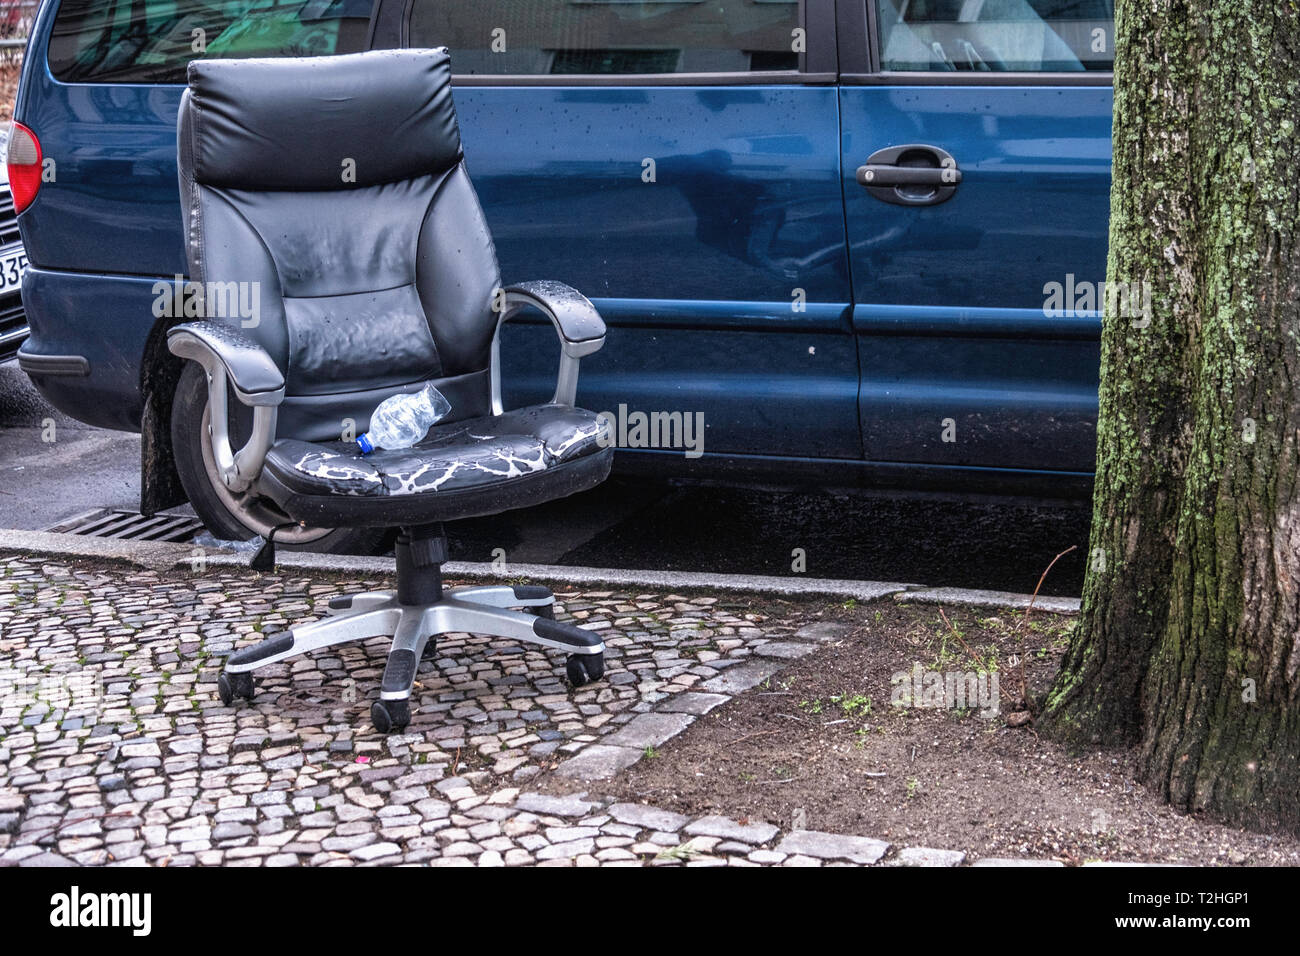 Abandoned,dumped,trashed.,discarded, redundant. Black desk chair on a pavement in Berlin - Stock Image